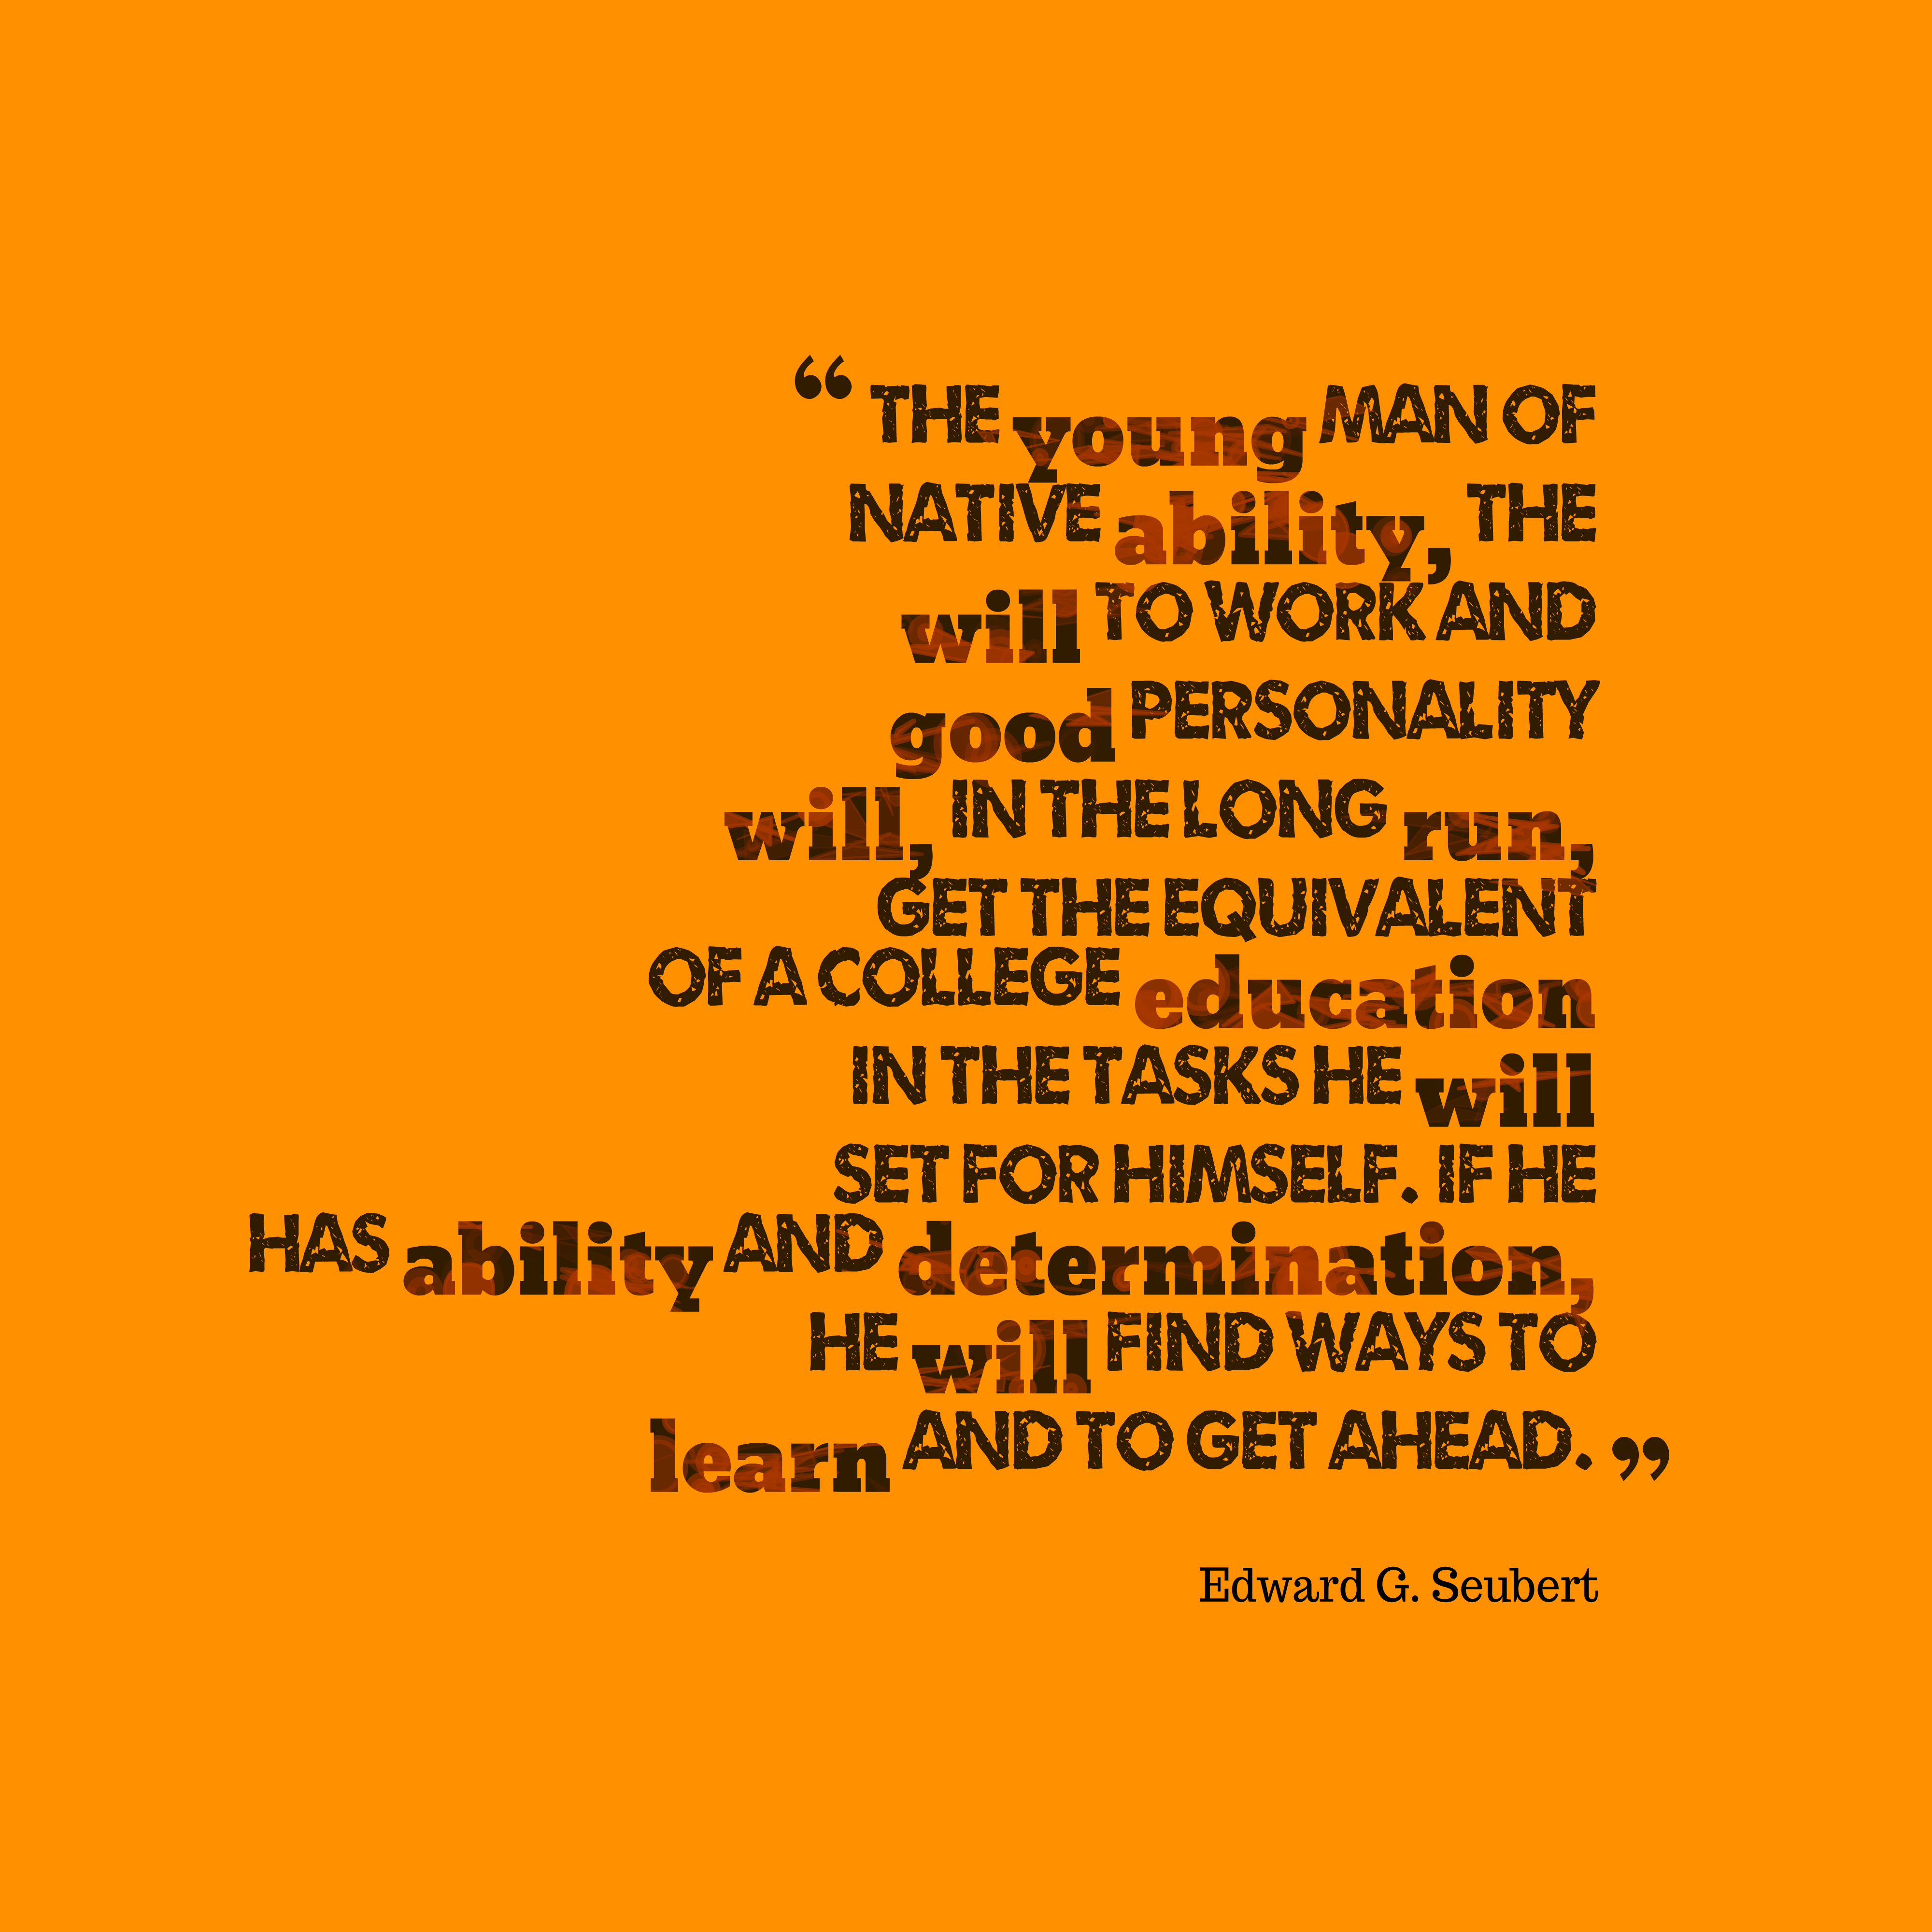 Quotes image of The young man of native ability, the will to work and good personality will, in the long run, get the equivalent of a college education in the tasks he will set for himself. If he has ability and determination, he will find ways to learn and to get ahead.